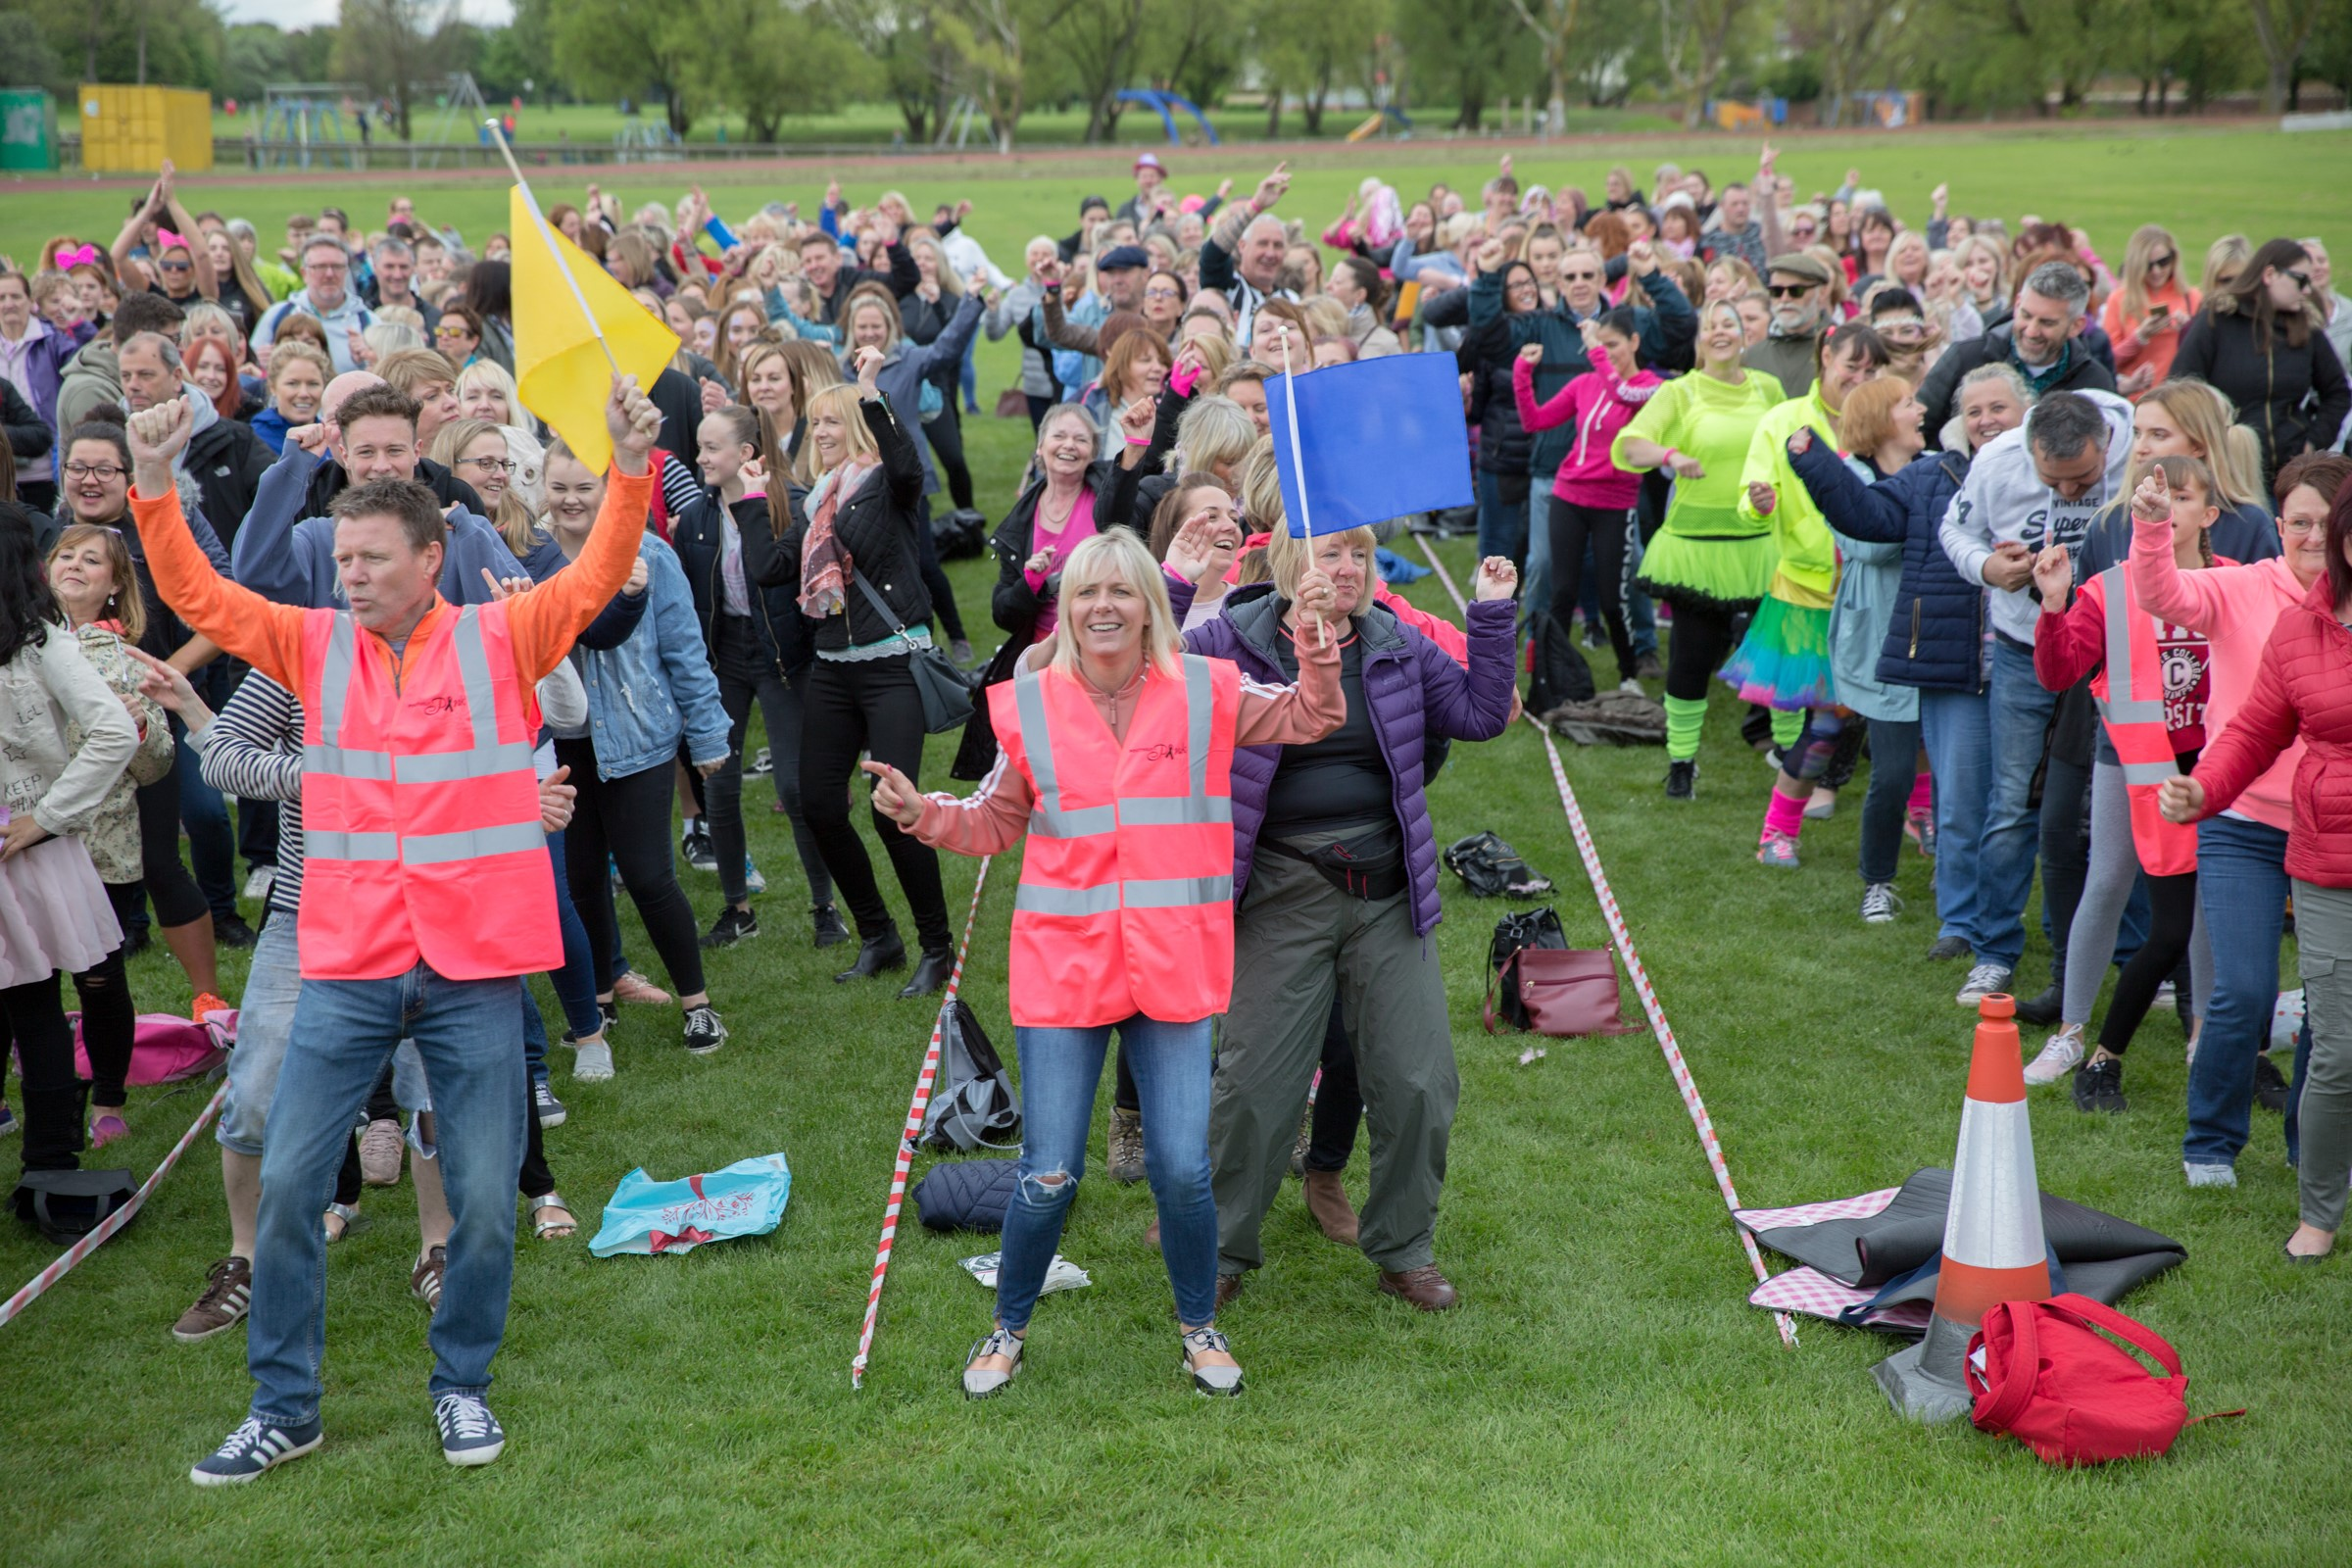 Crowds at Oops Upside Your Head Guiness World Record Attempt Event at Churchill Playing Fields Whitley Bay